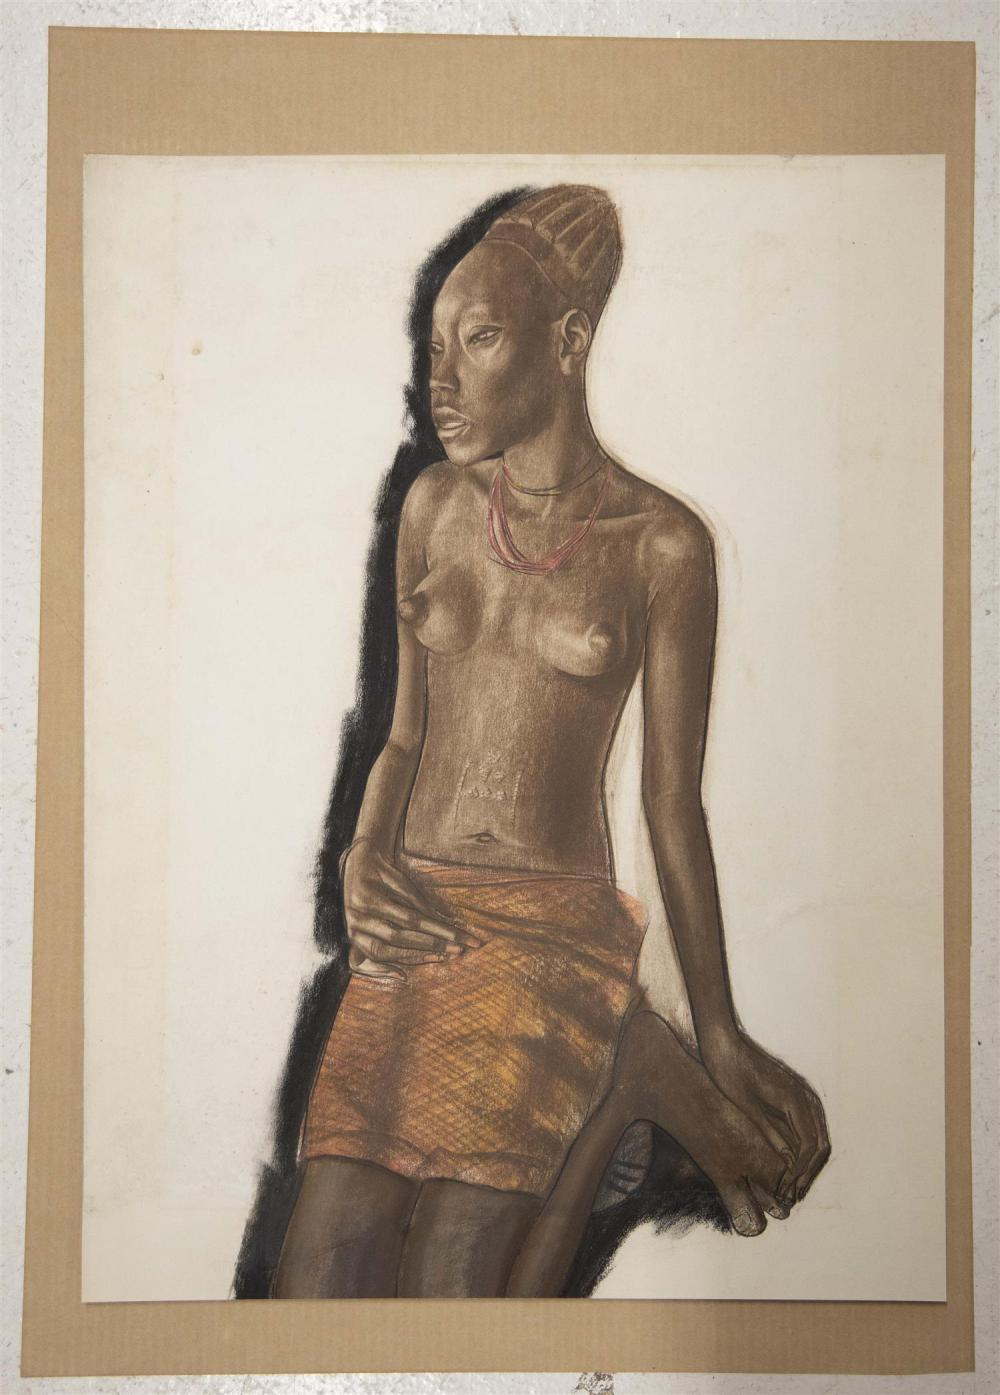 ALEXANDRE YEVGENIEVICH YAKOVLEV, Russian Federation, 1887-1938, Portrait of a young Bando woman., Charcoal, pastel and pencil on Arc...